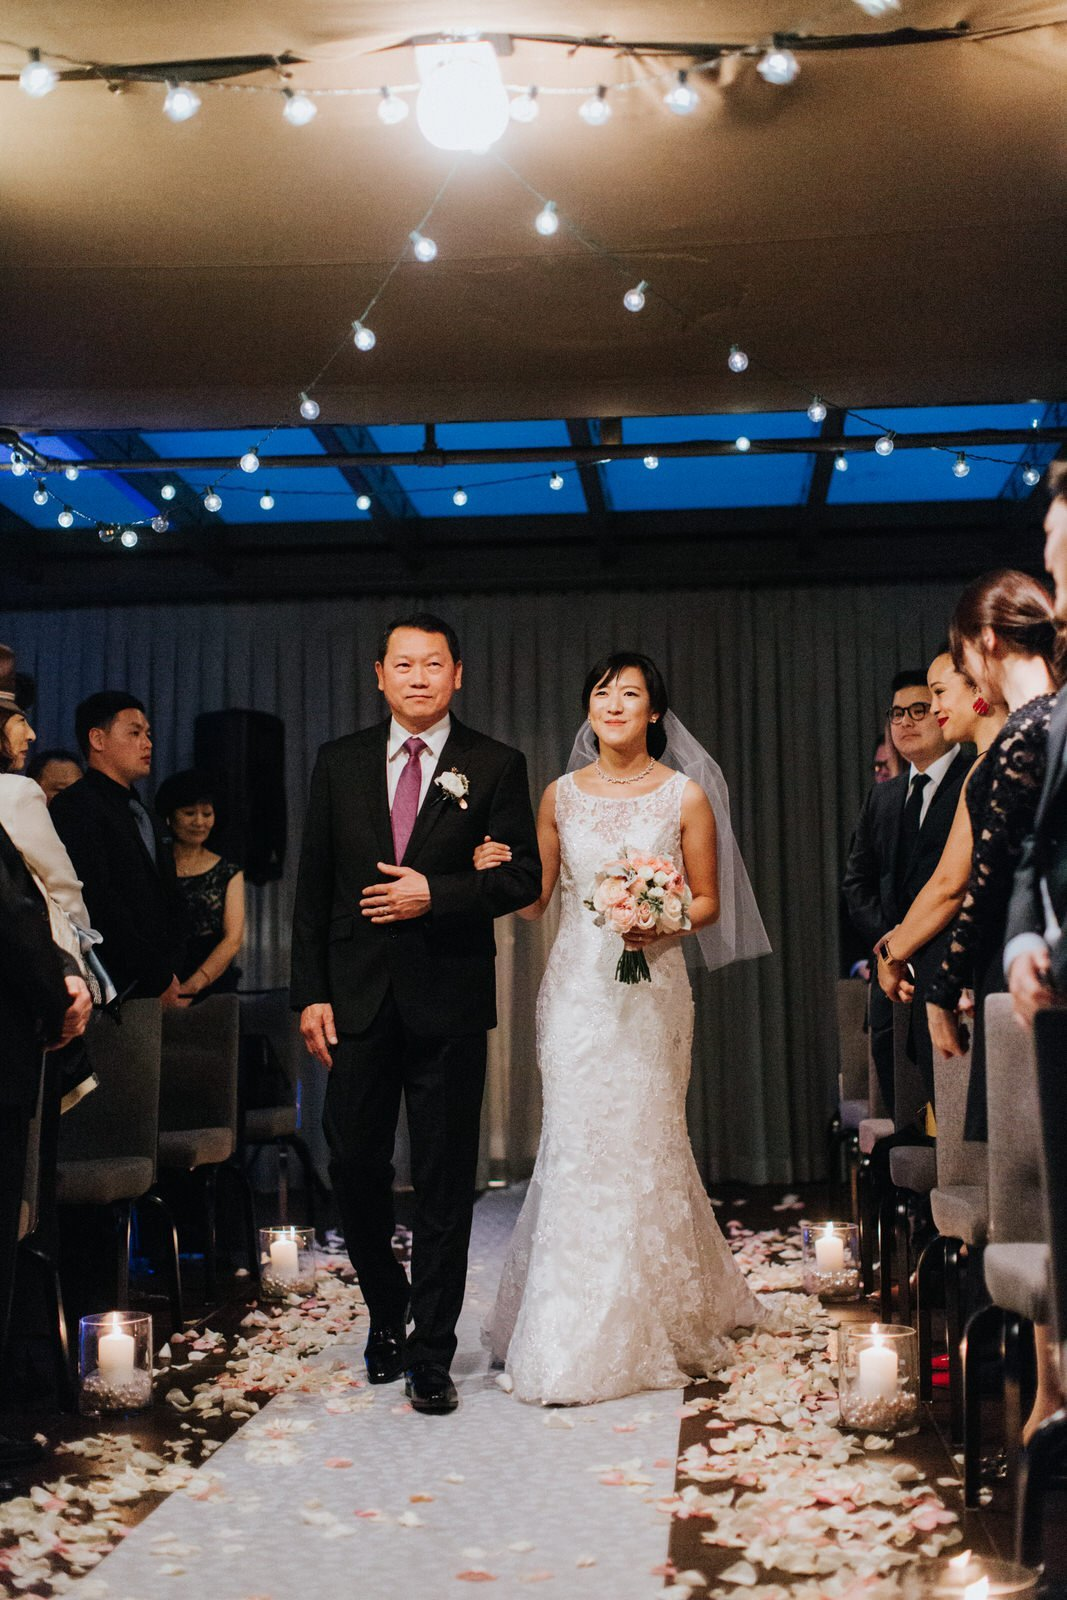 The groom walks his daughter, the bride, down the isle